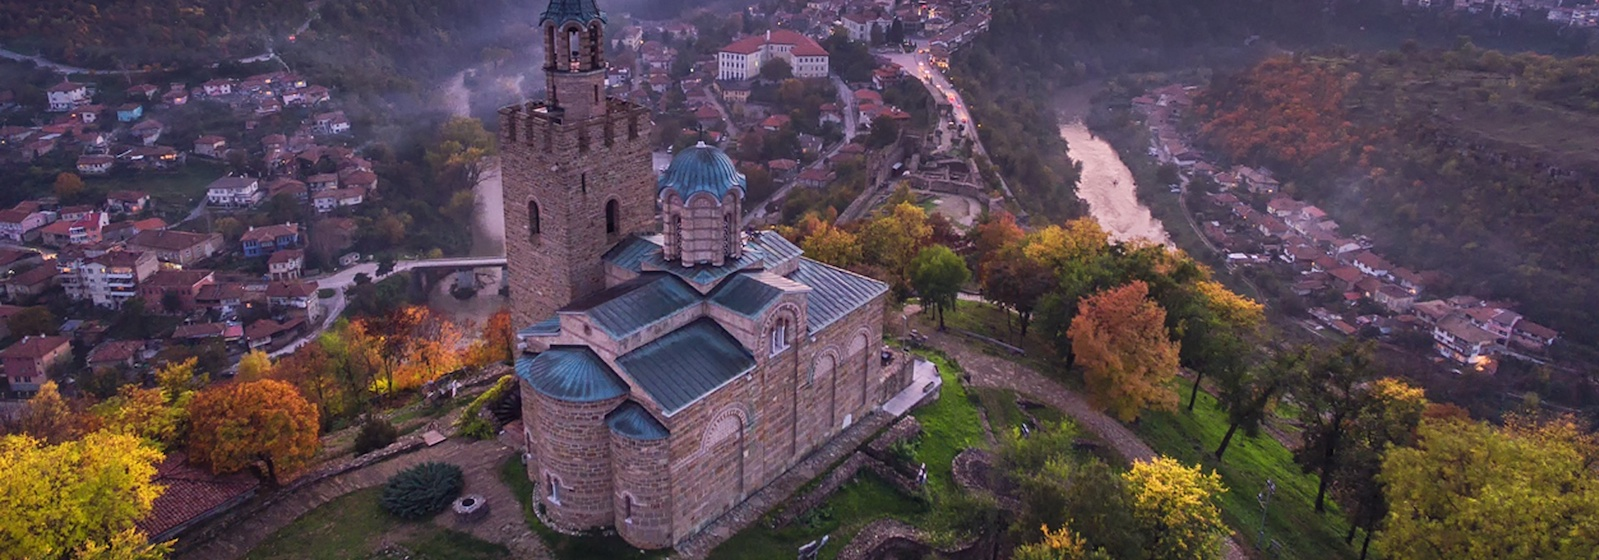 veliko_tarnovo___bulgaria-wallpaper-1920×1200